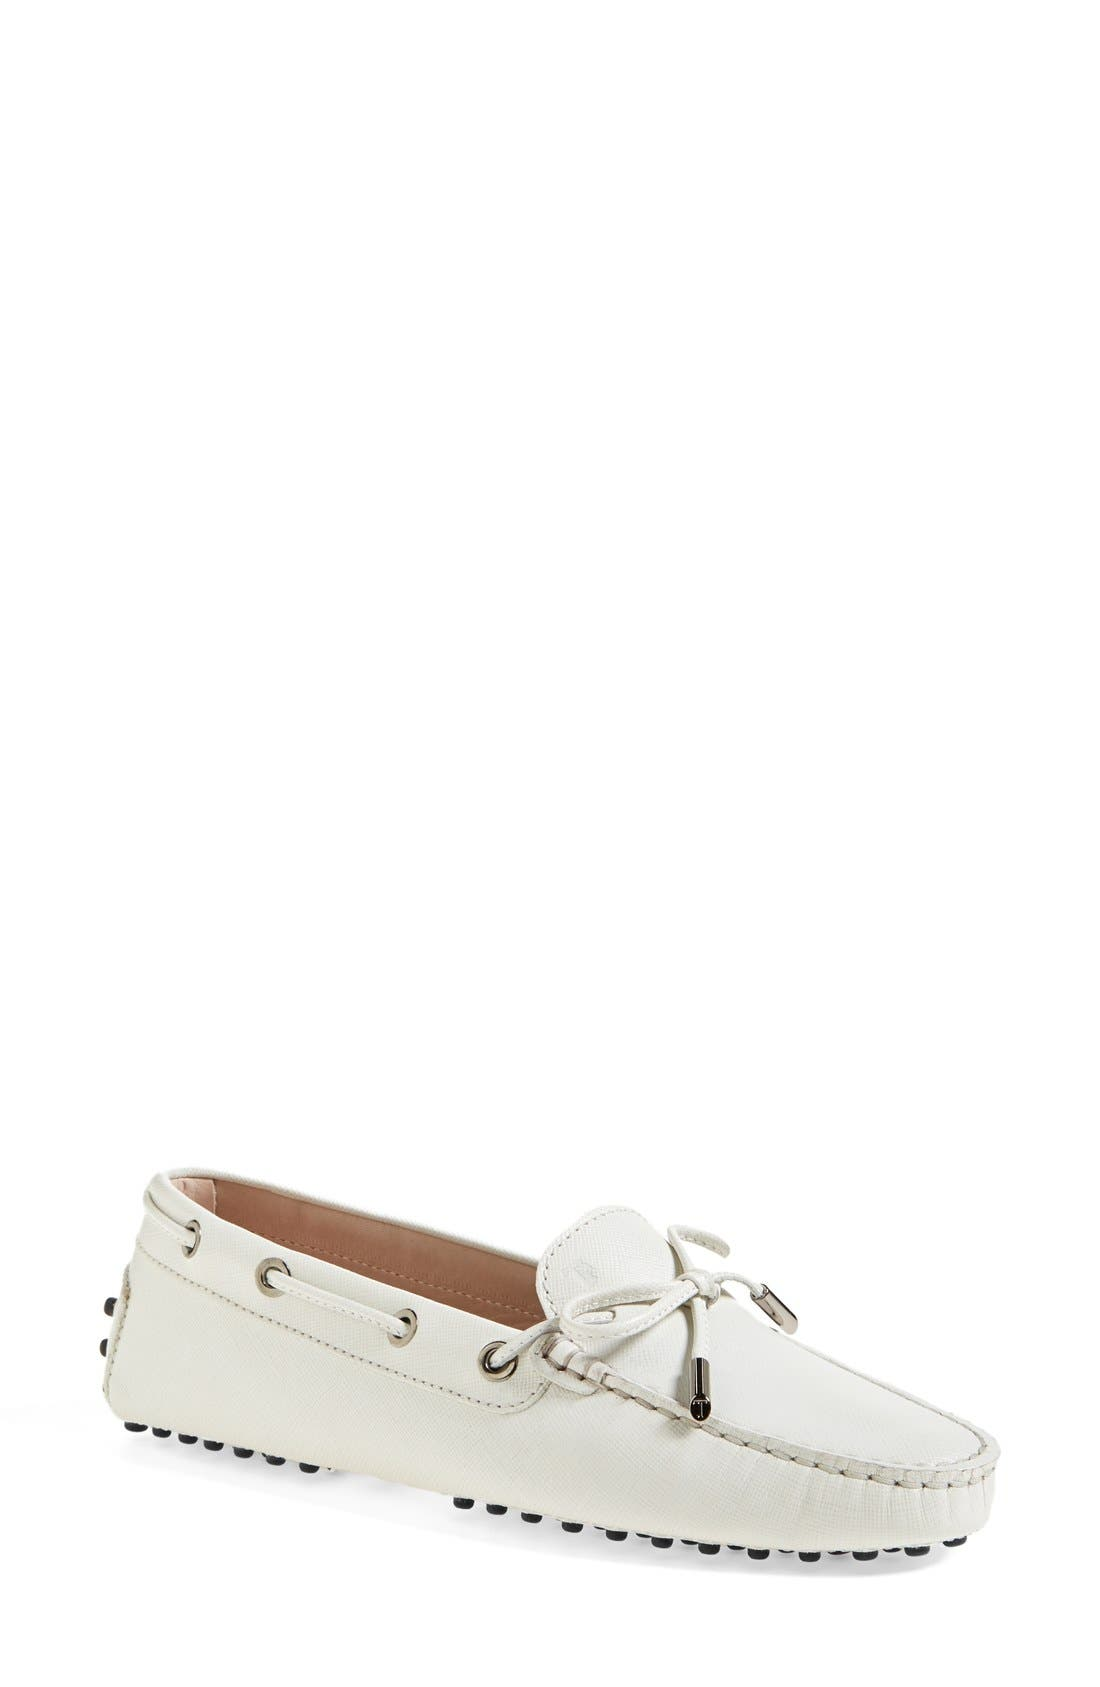 Main Image - Tod's 'Gommini' Tie Front Leather Driving Moccasin (Women)